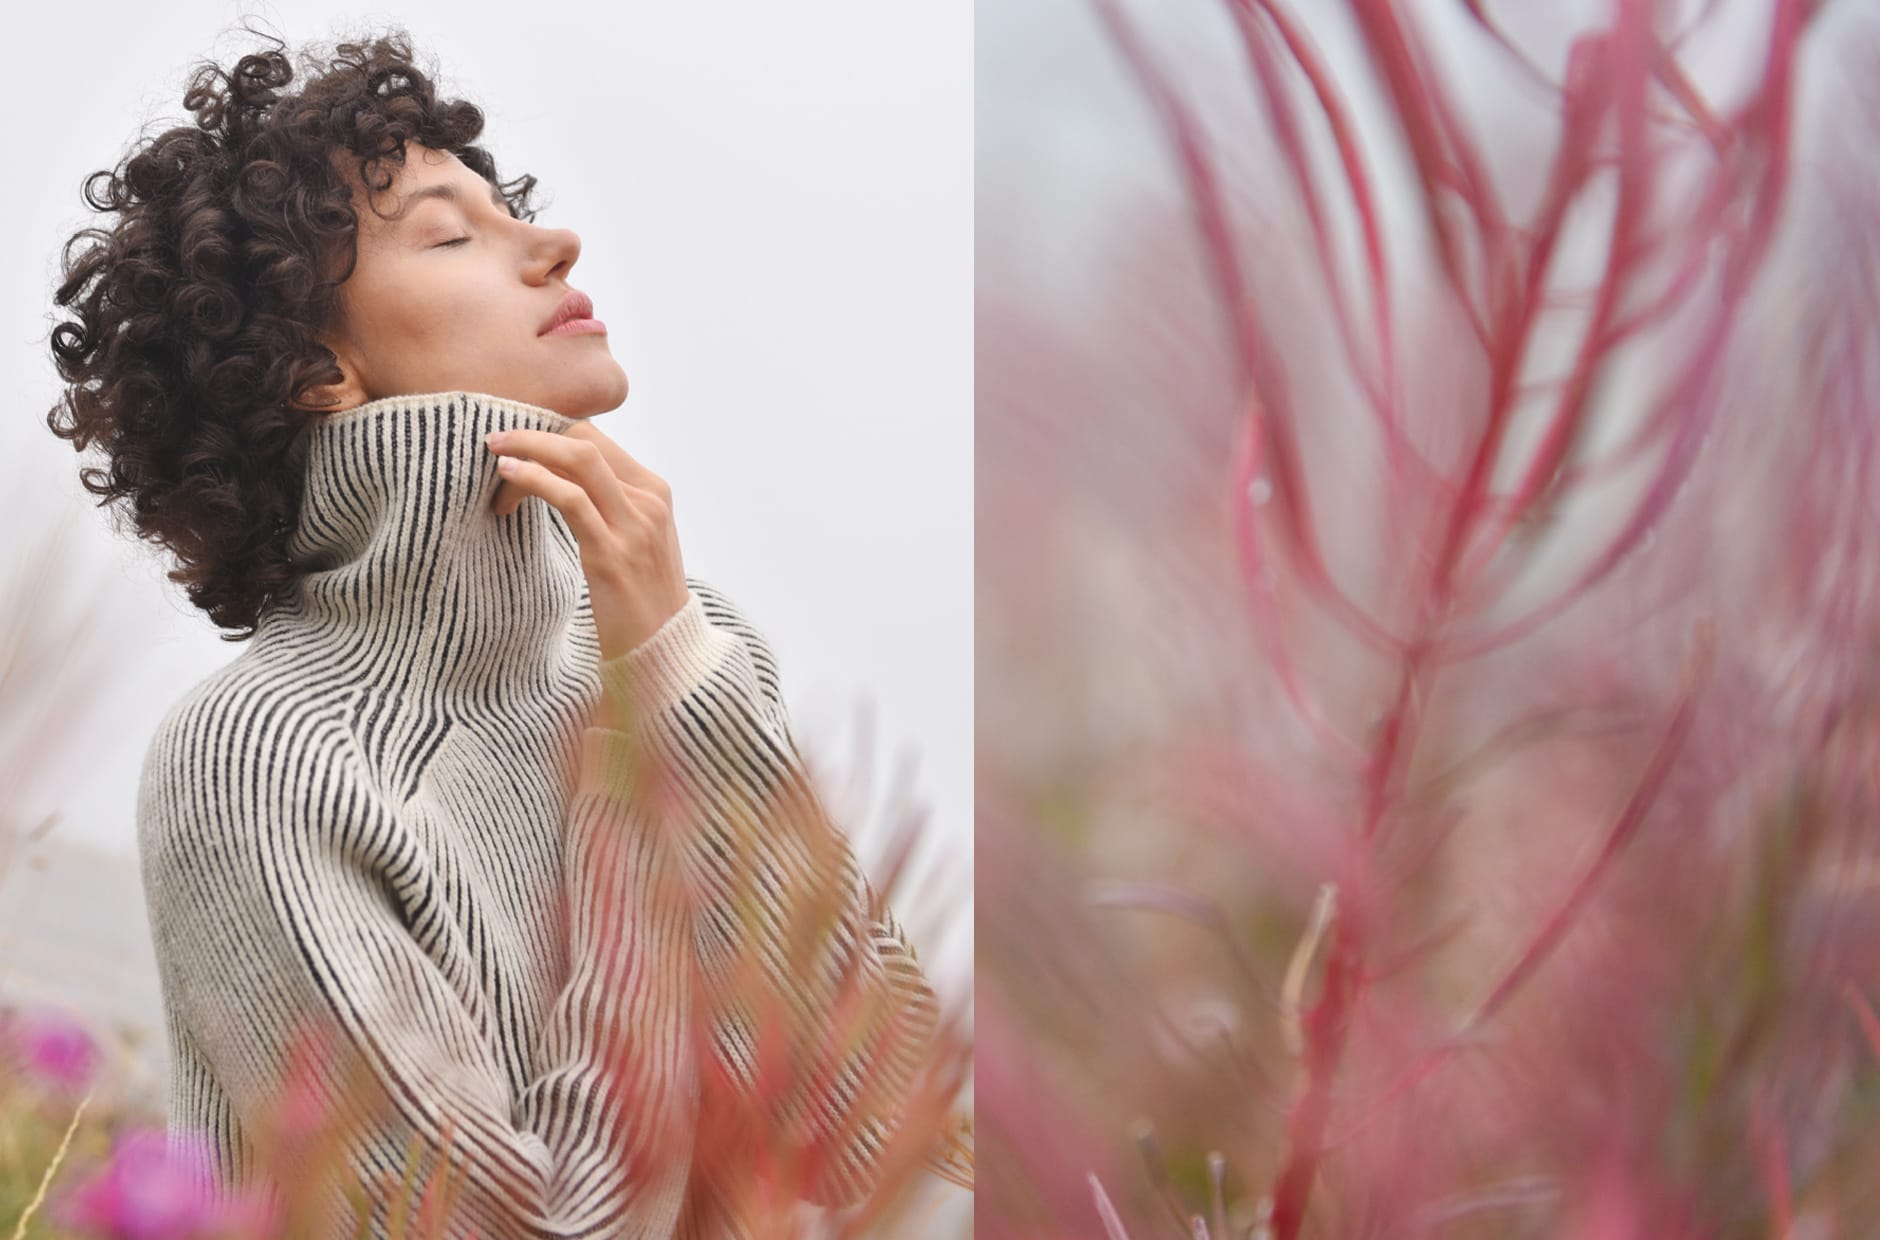 FW 20 - Capture the Fog - knitwear in organic wool fabric natural dye LULLABY